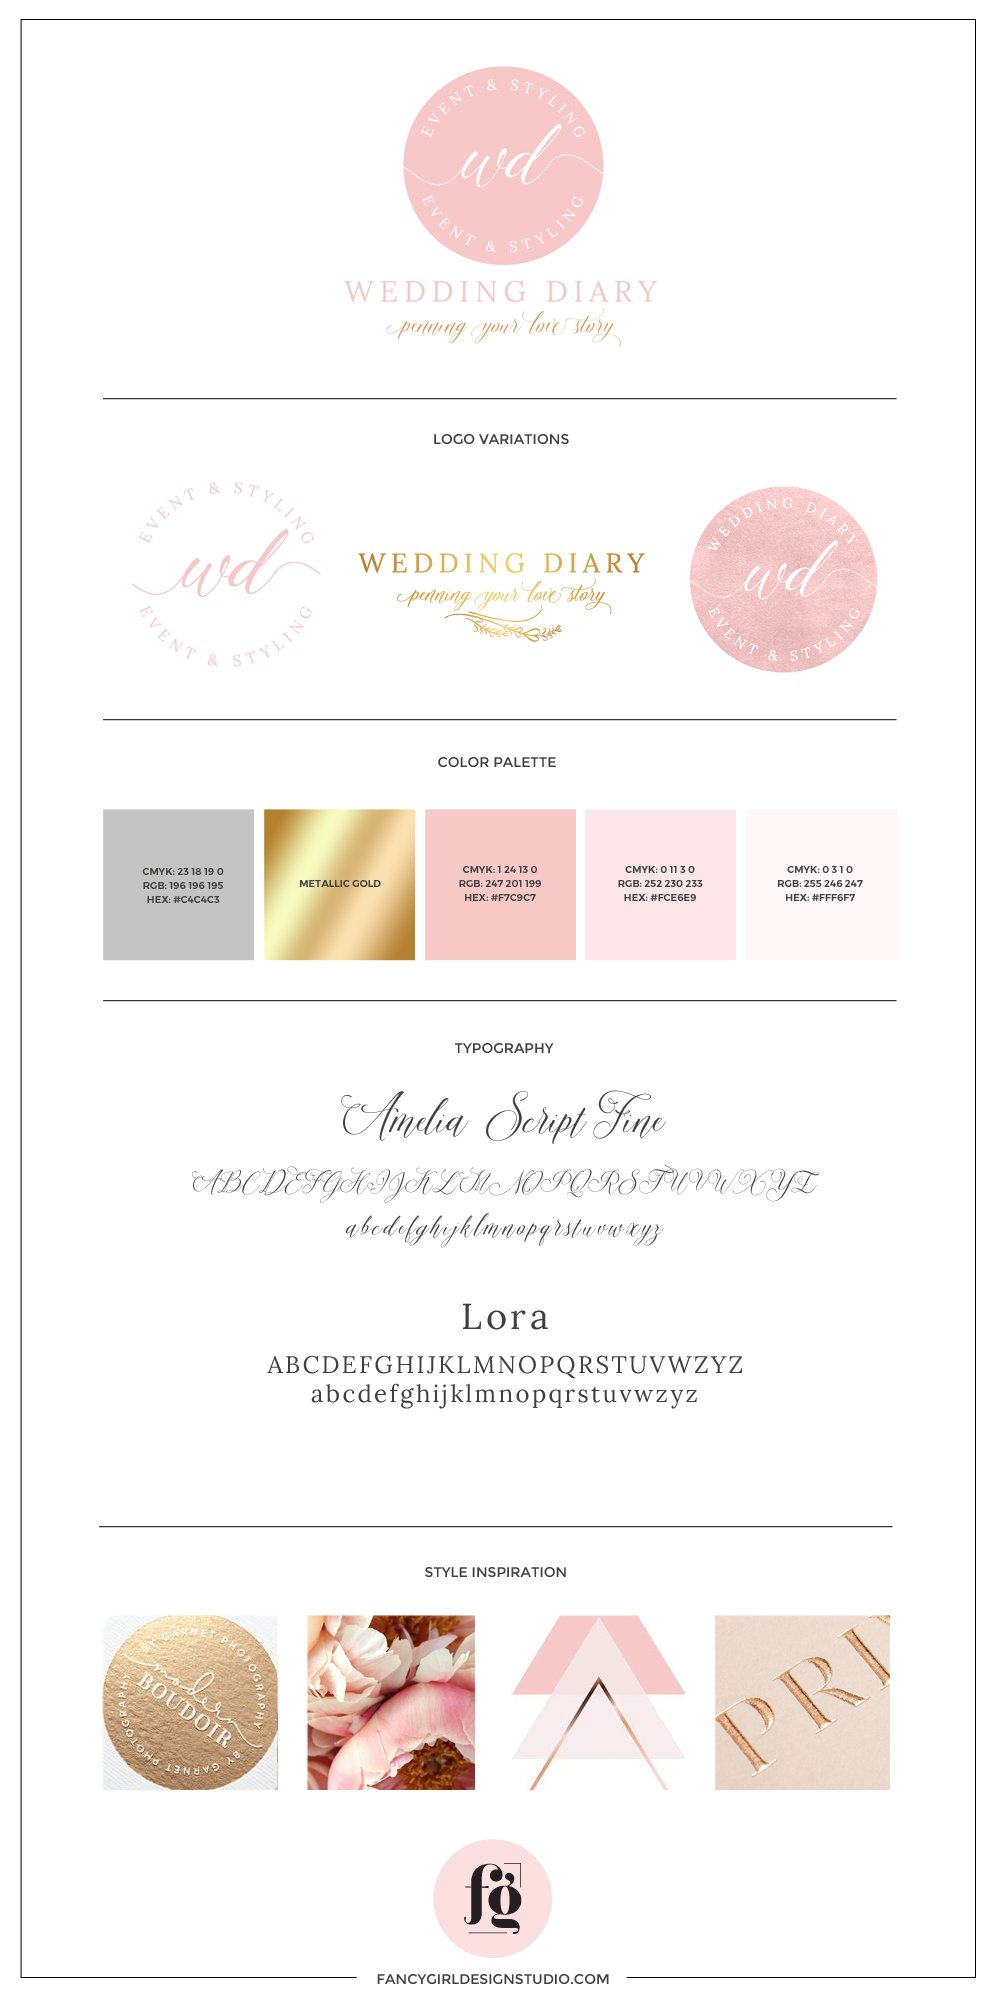 brand-board-wedding-diary-fgd